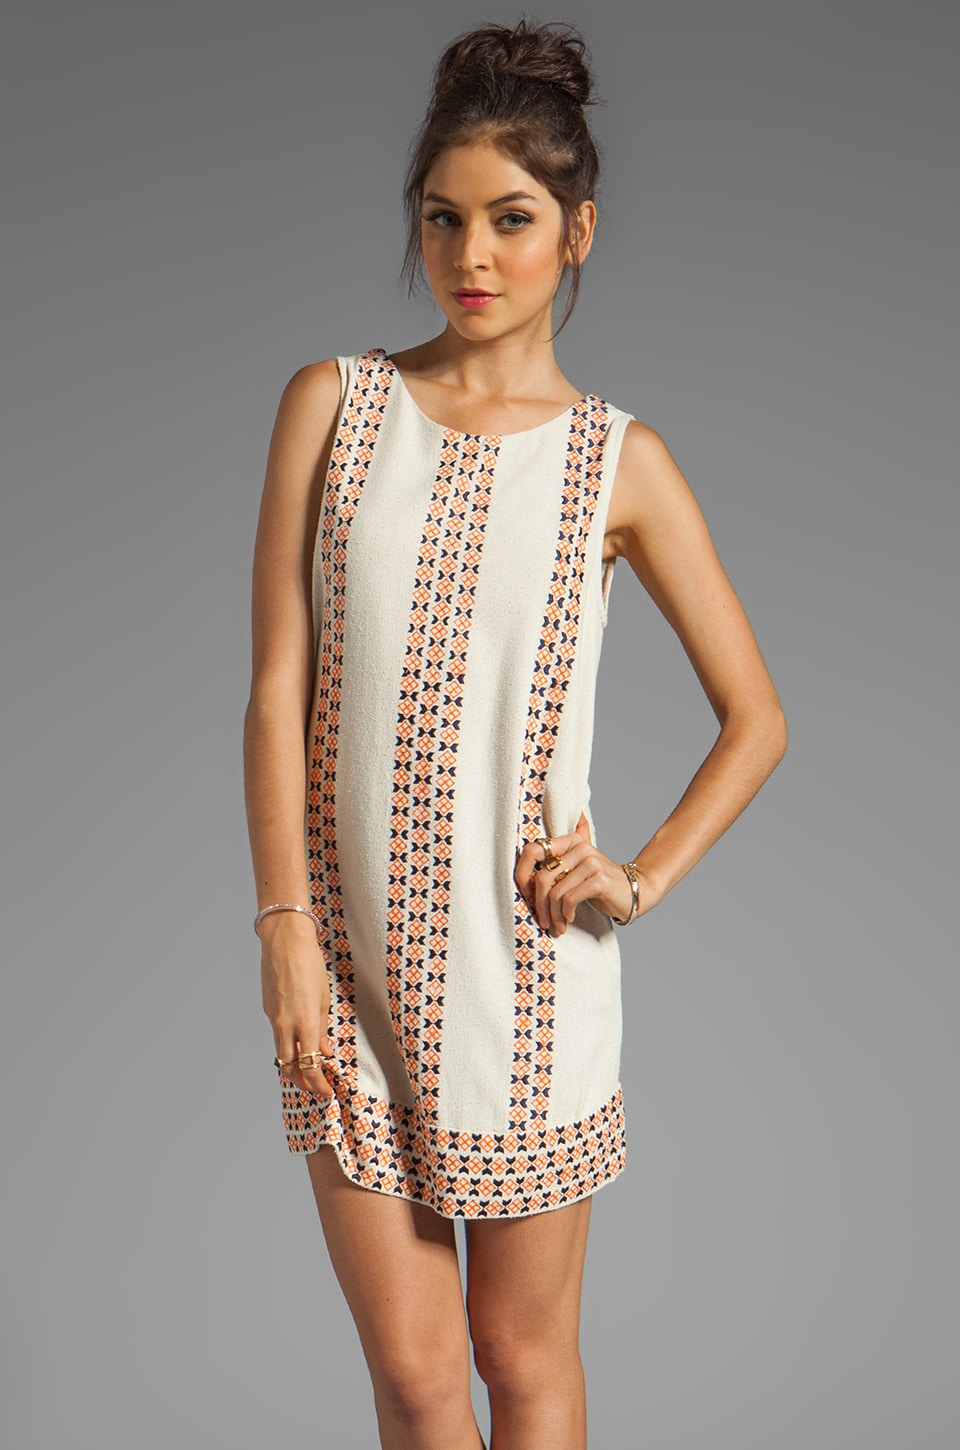 Joie Lawder Native Stripe Dress in Off-White/Spicy Orange